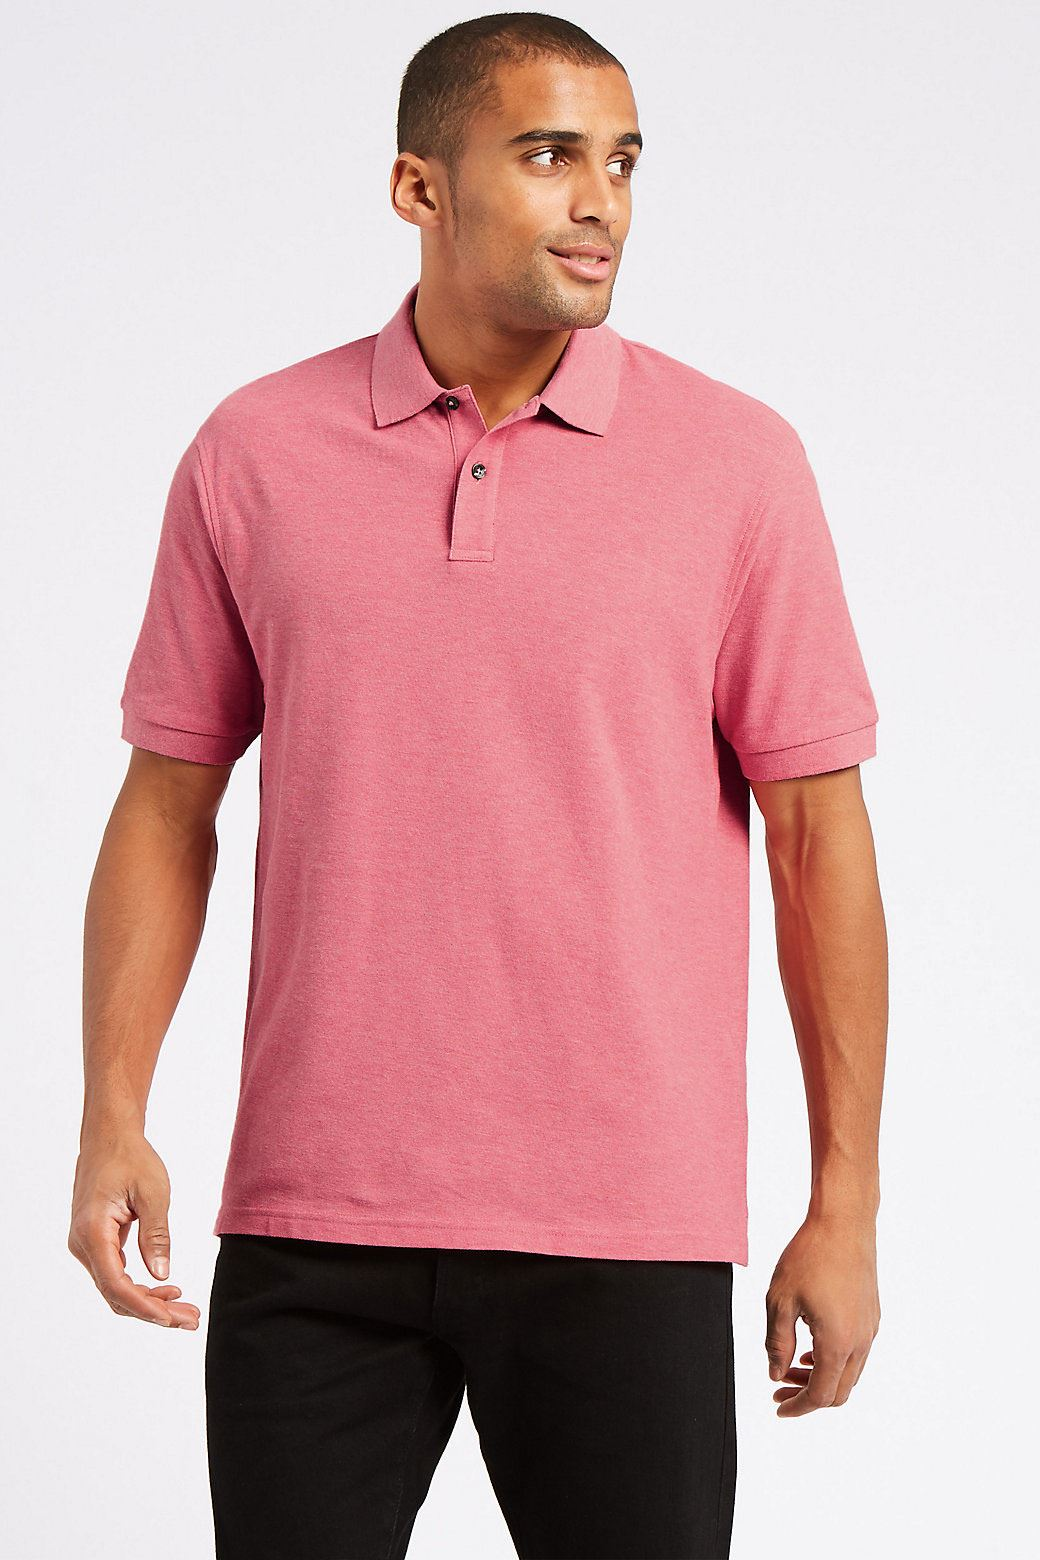 Ex-Marks-and-Spencer-Mens-Cotton-Pique-Polo-Shirt-NEW-Sizes-S-3XL thumbnail 22